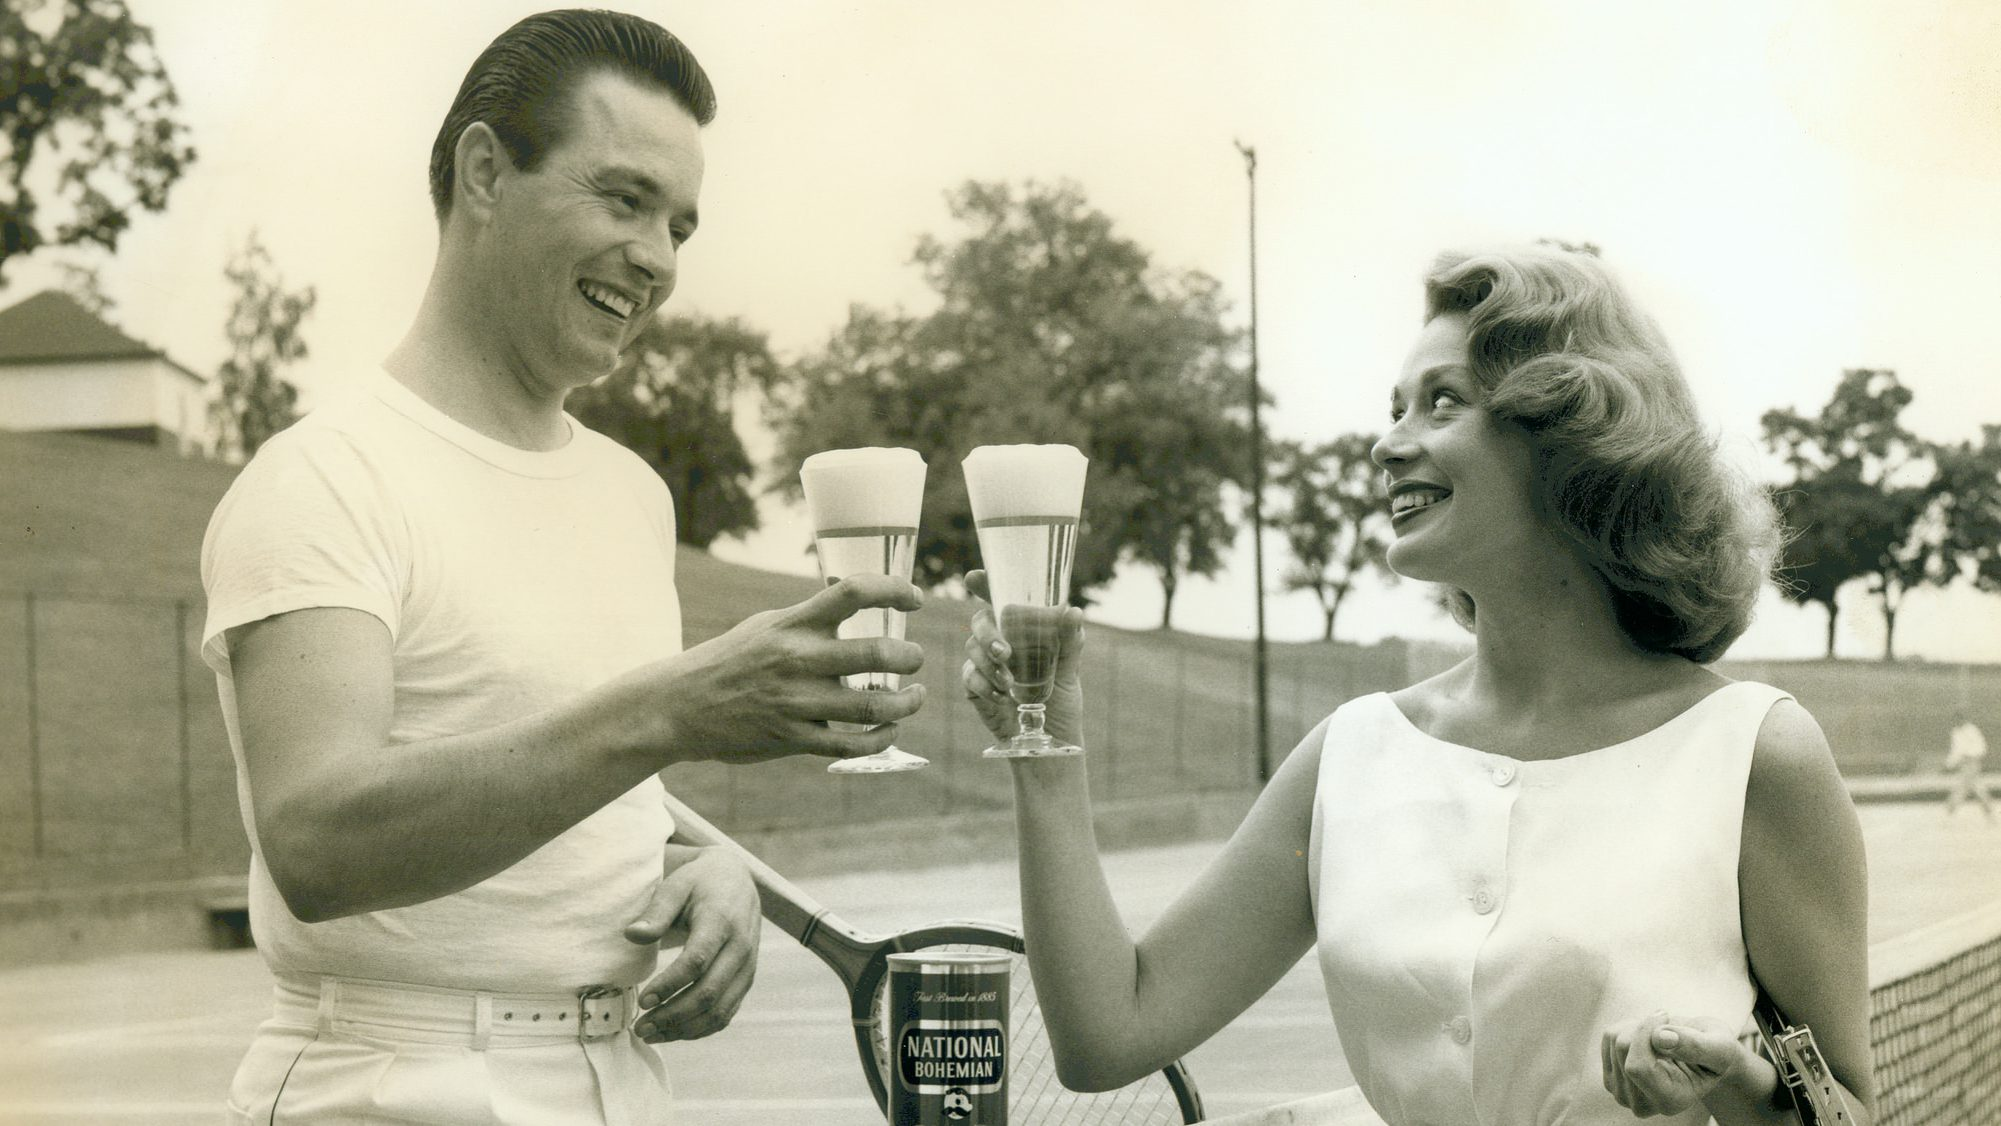 A man and a woman smile at each other in a vintage photo